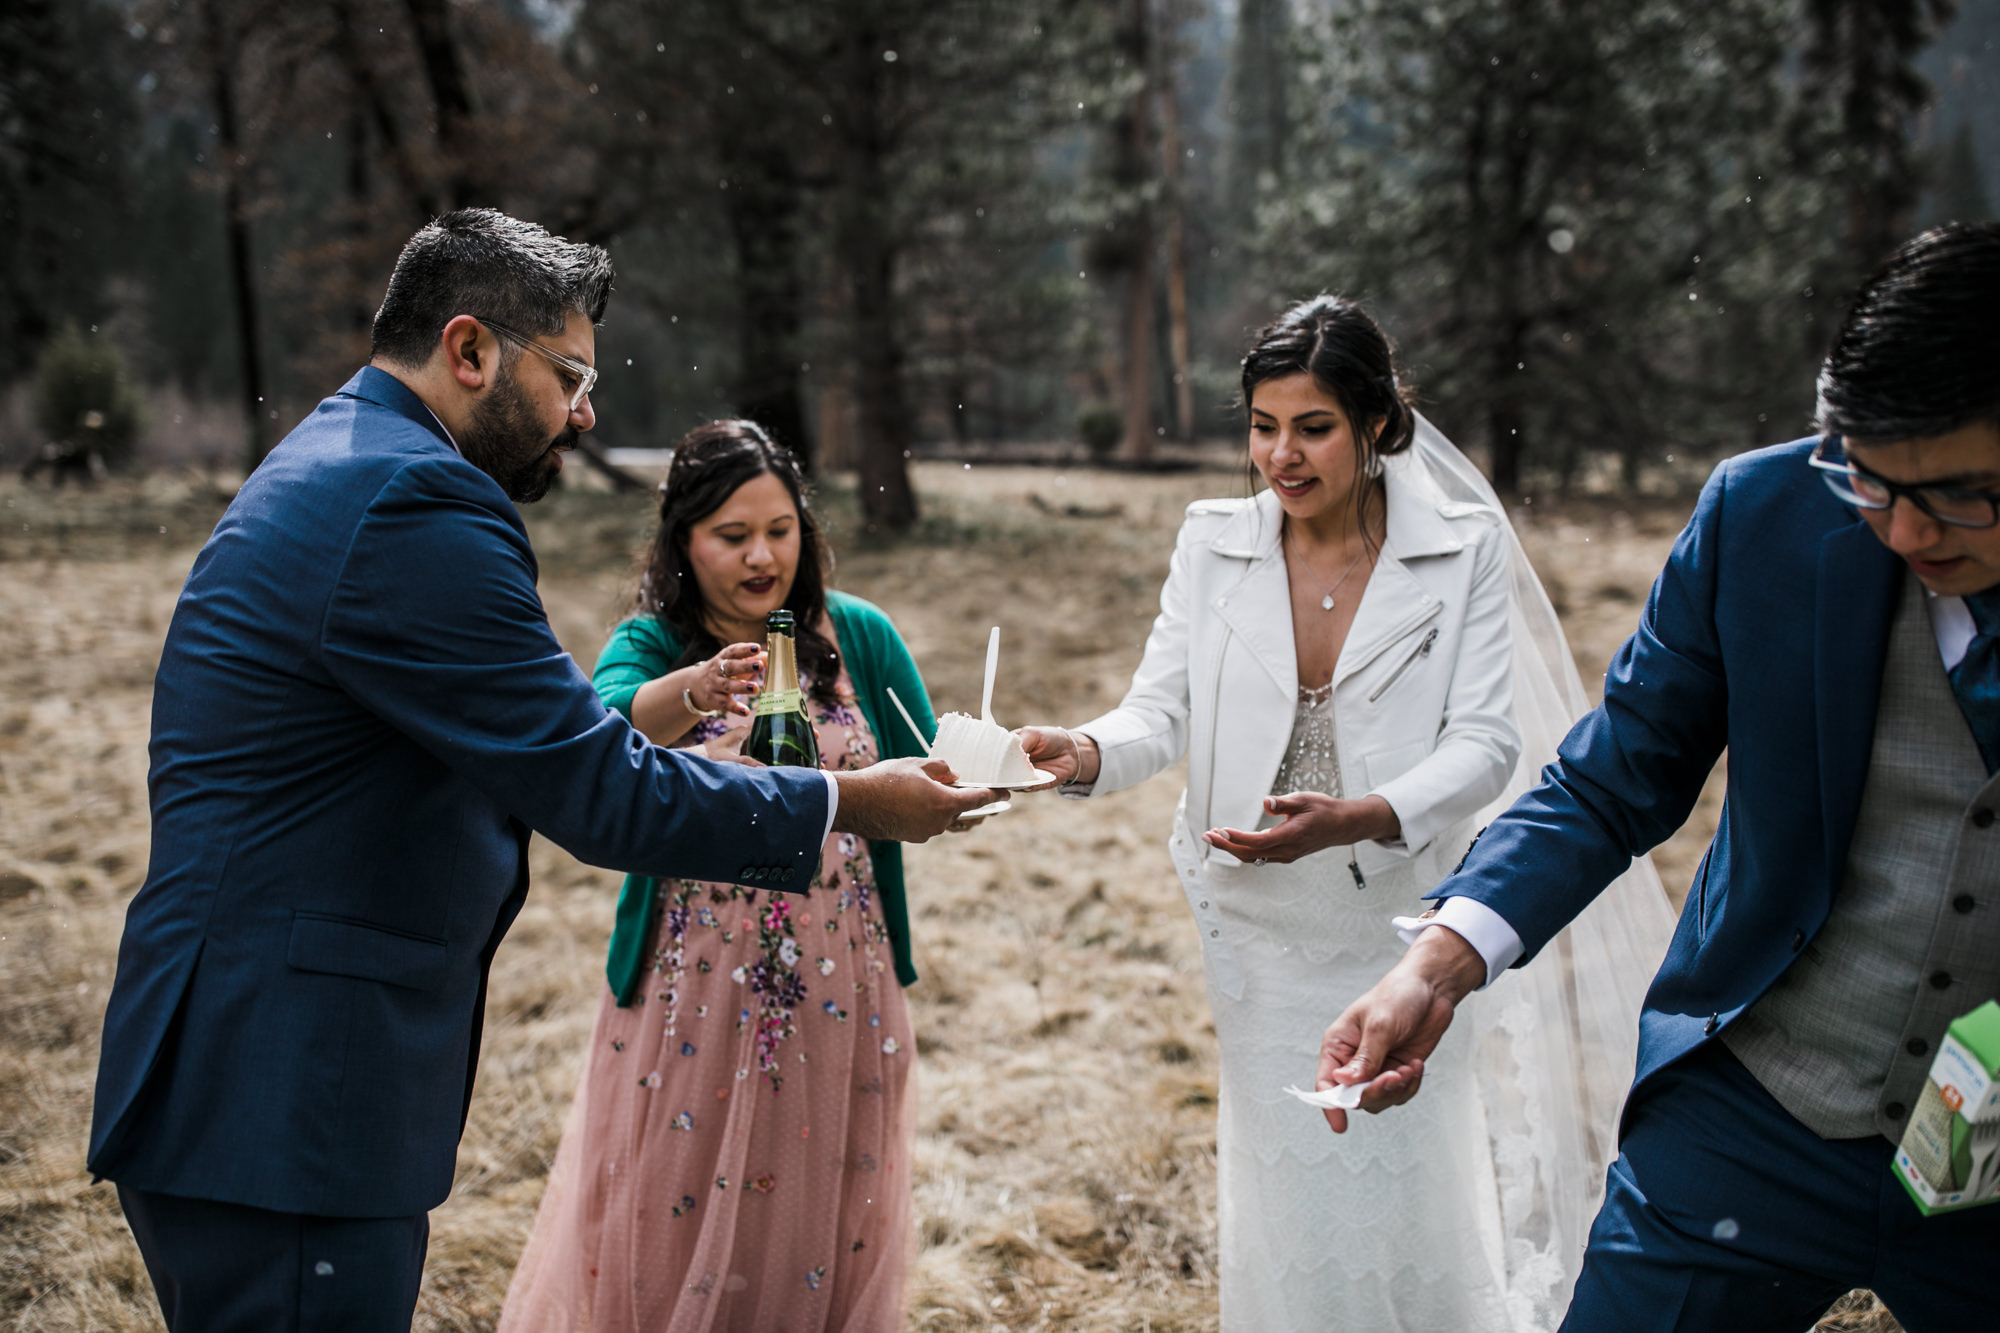 picnic reception on your wedding day